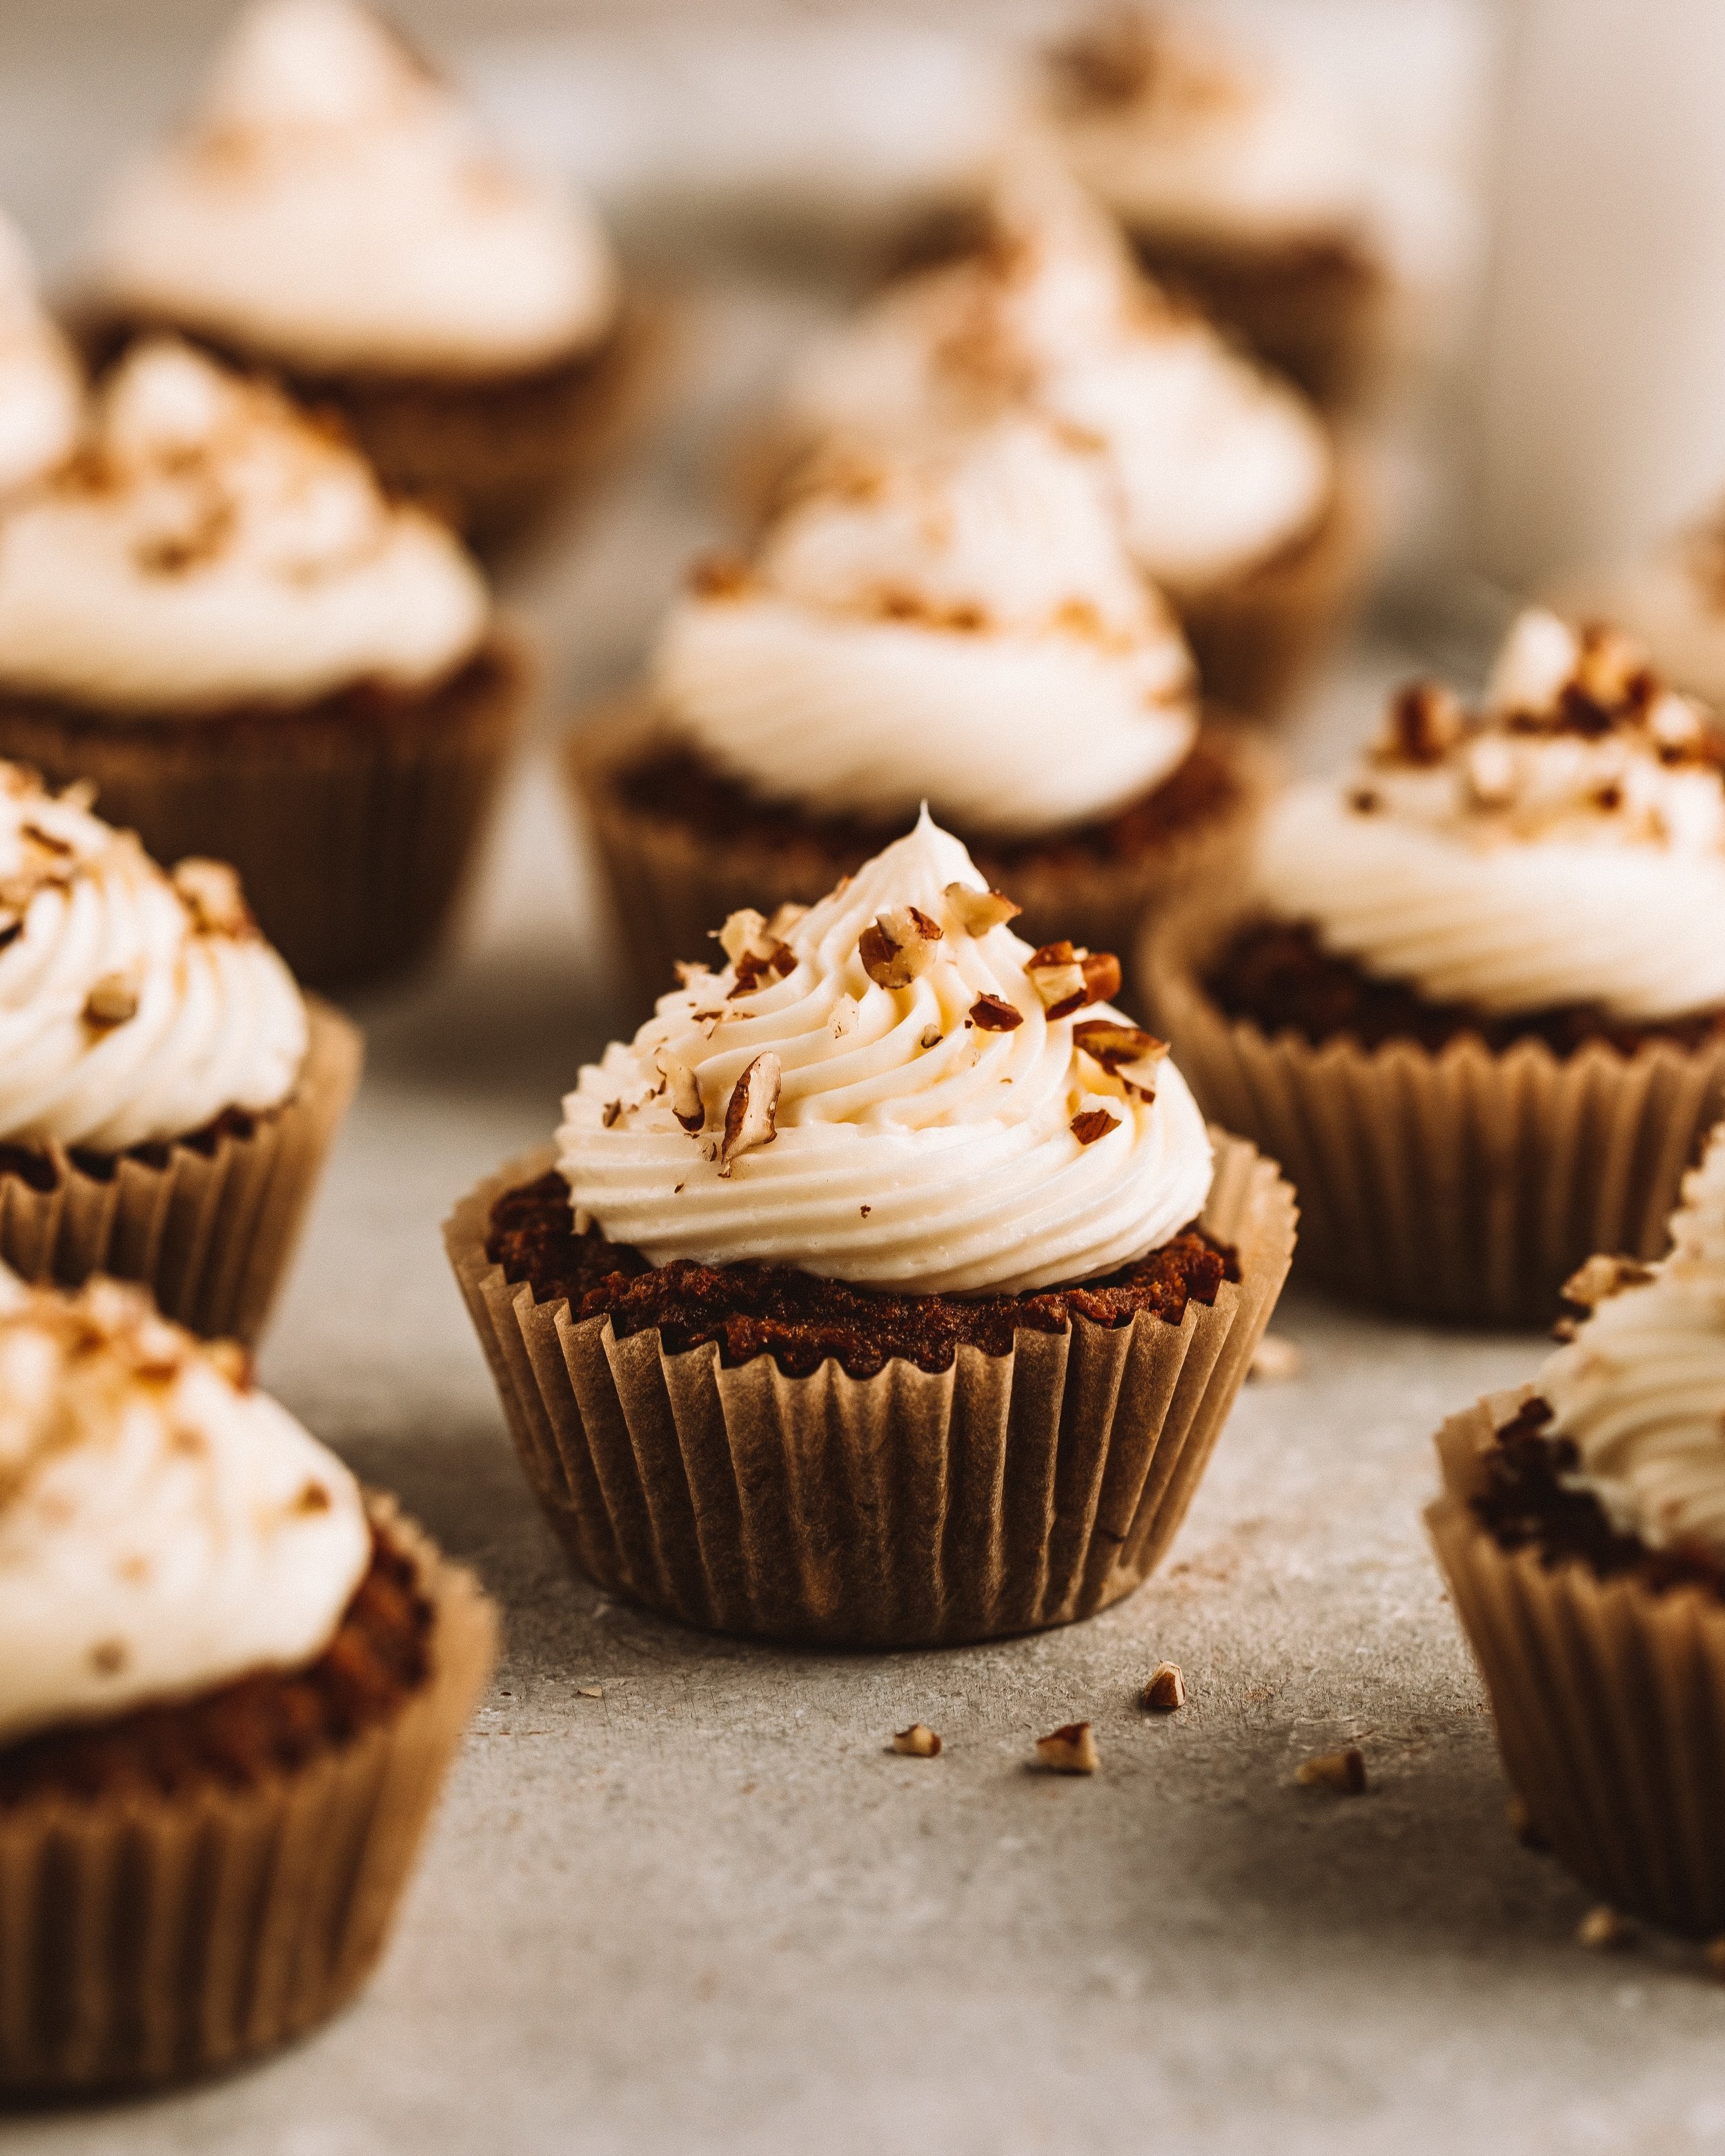 carrot cake caramel cupcakes with dairy free frosting by kalejunkie